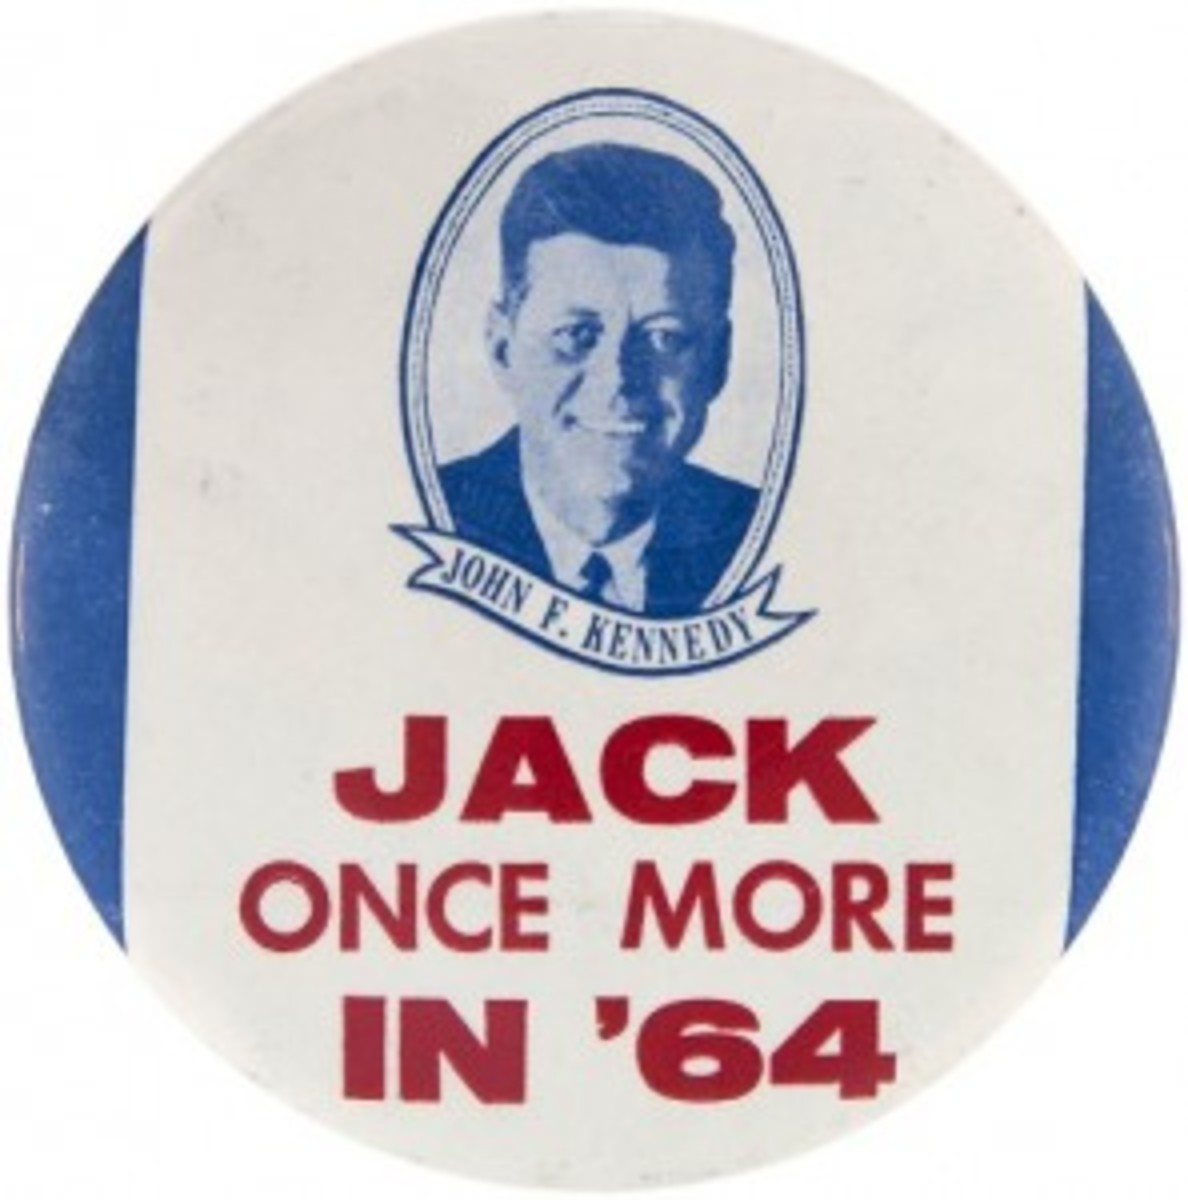 4-inch button produced in anticipation of John F. Kennedy's 1964 campaign, one of fewer than six known, est. $2,000-$5,000. Hake's image